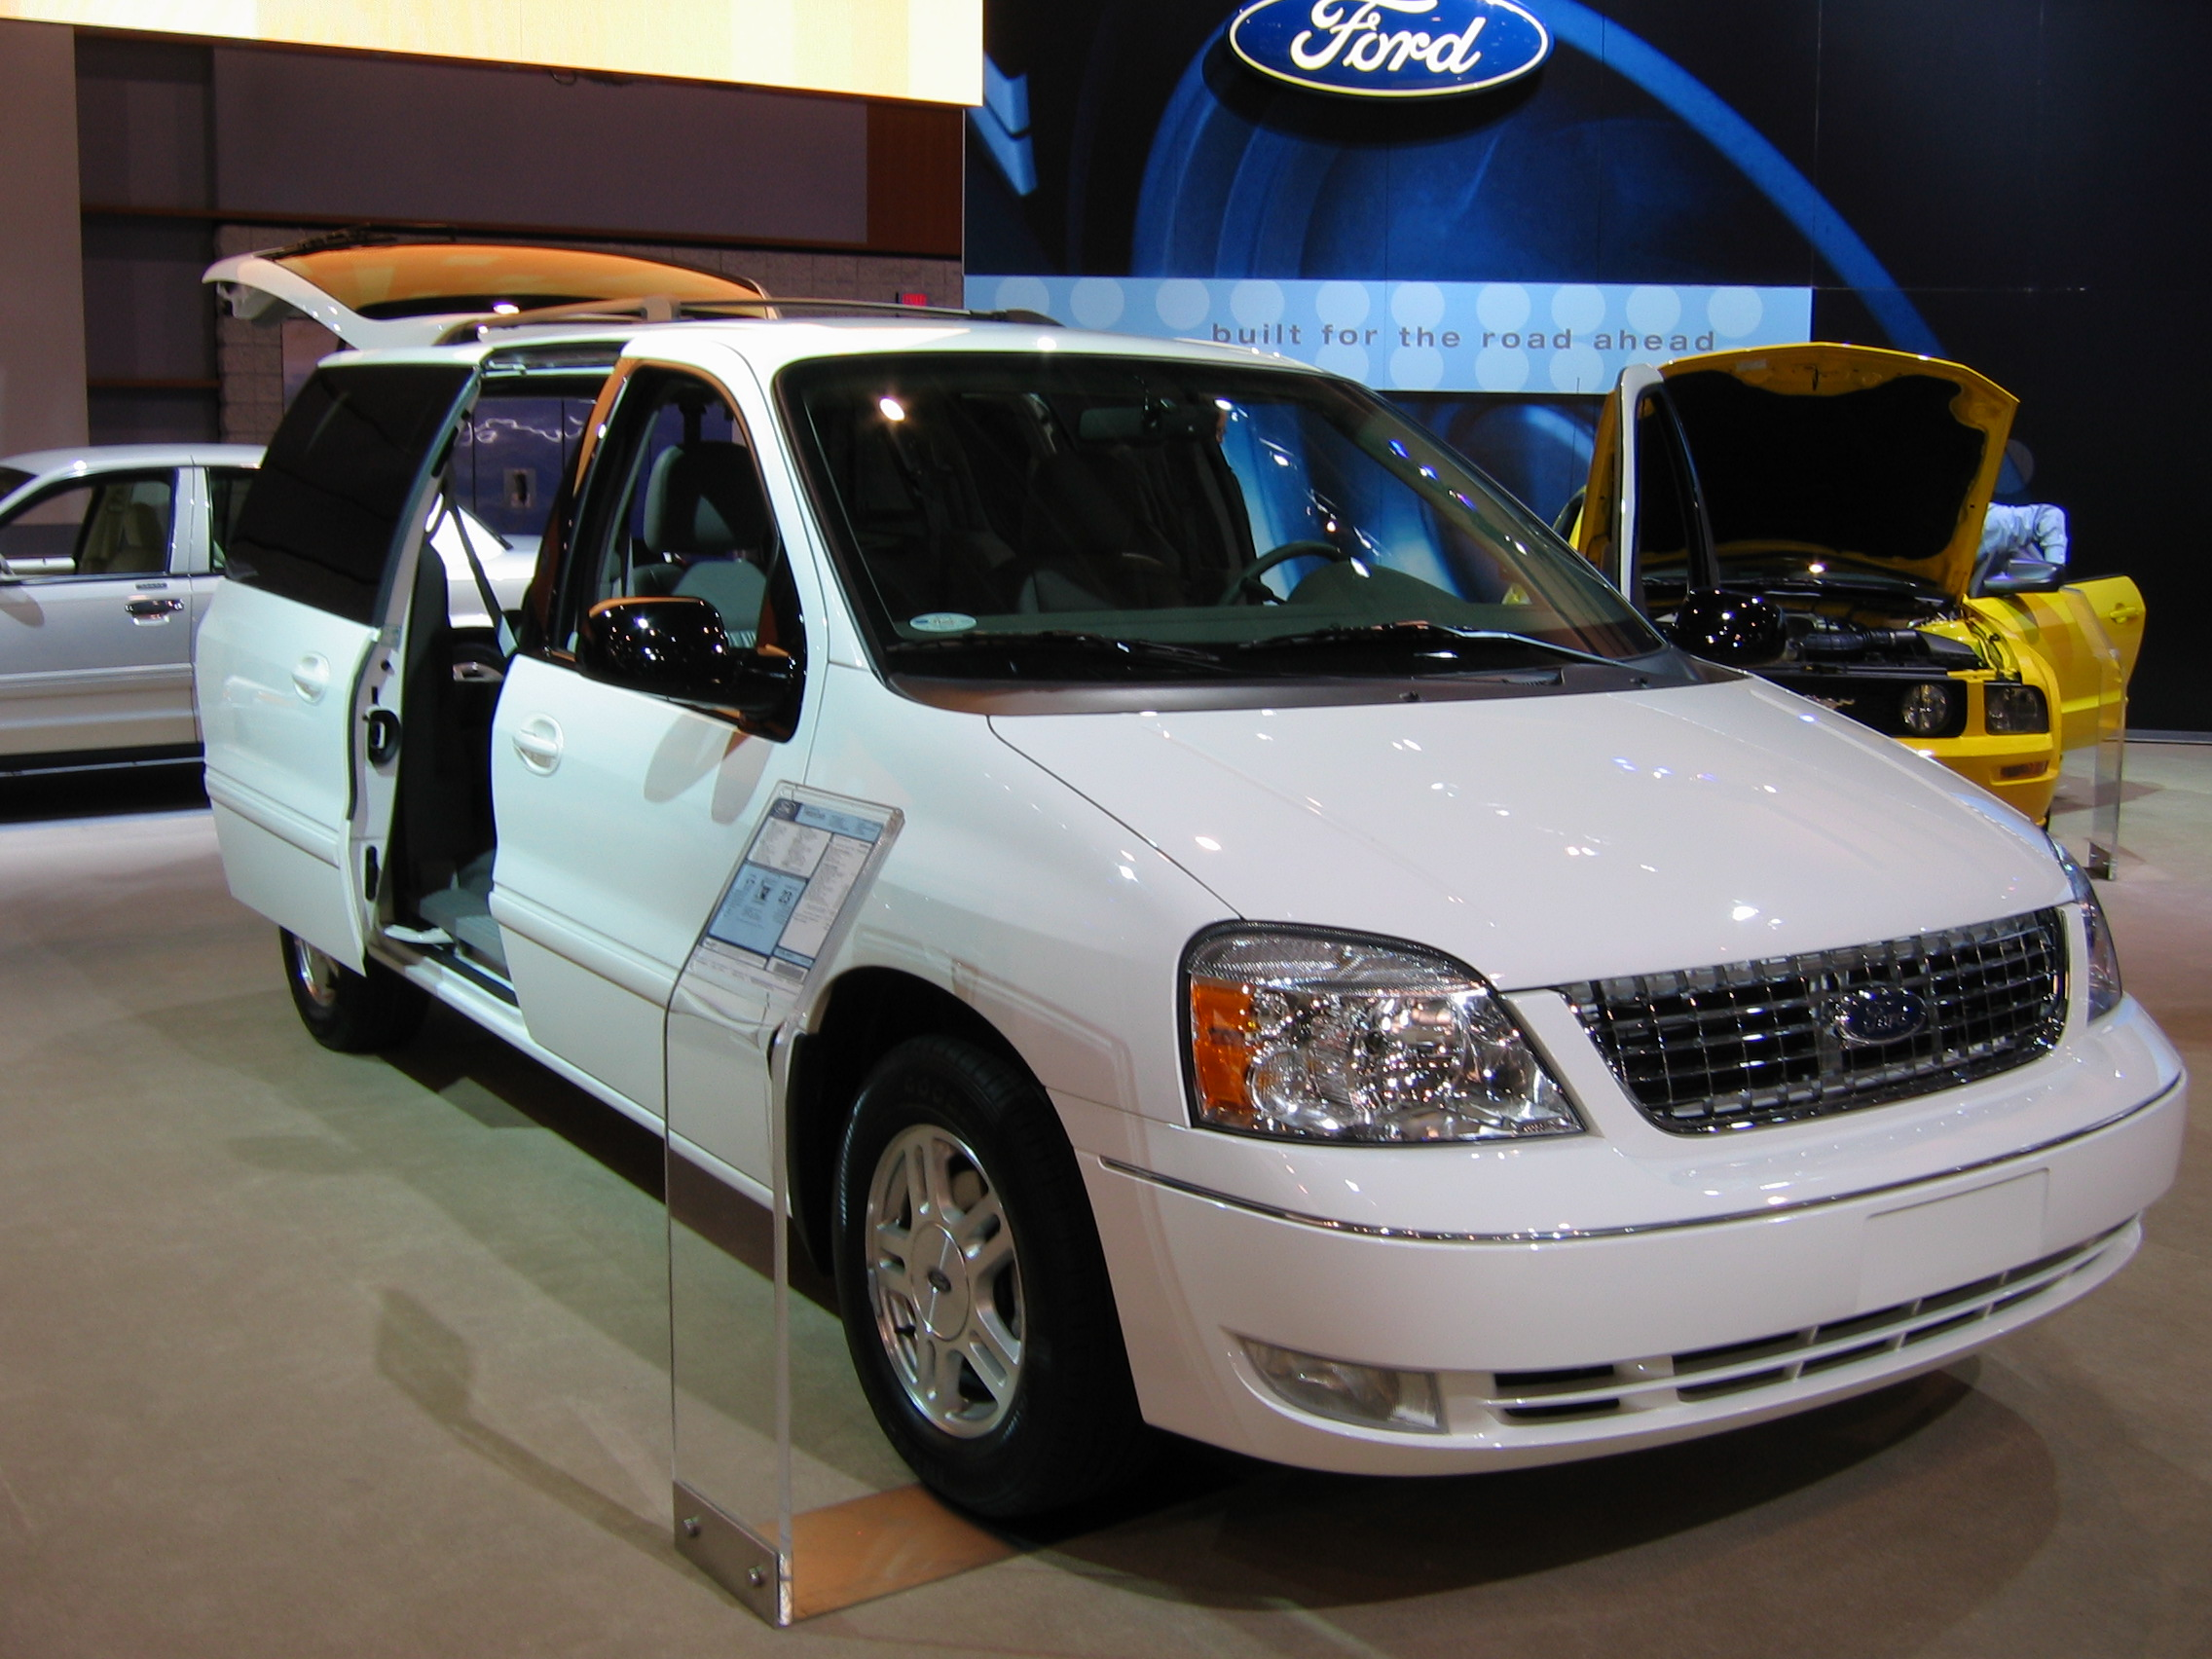 Ford freestar photo - 1